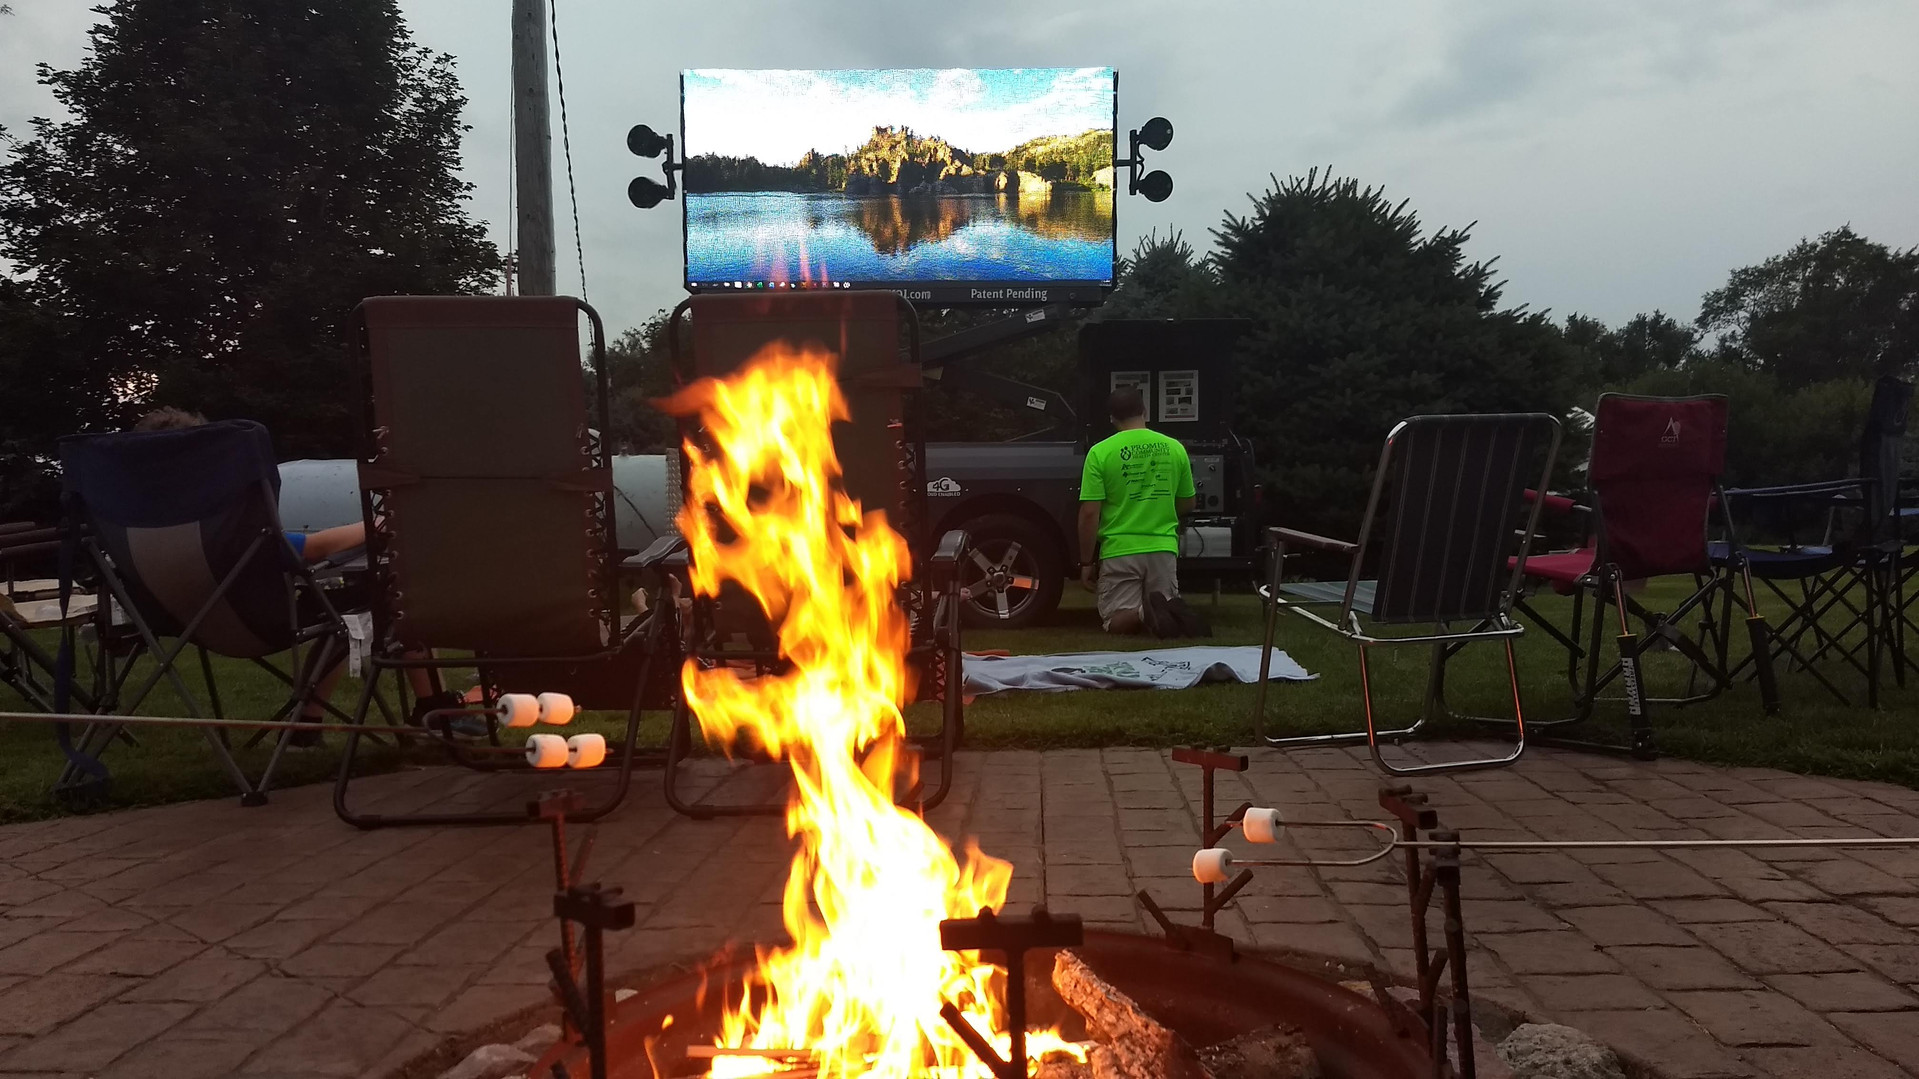 Multimedia movie night at camp fire